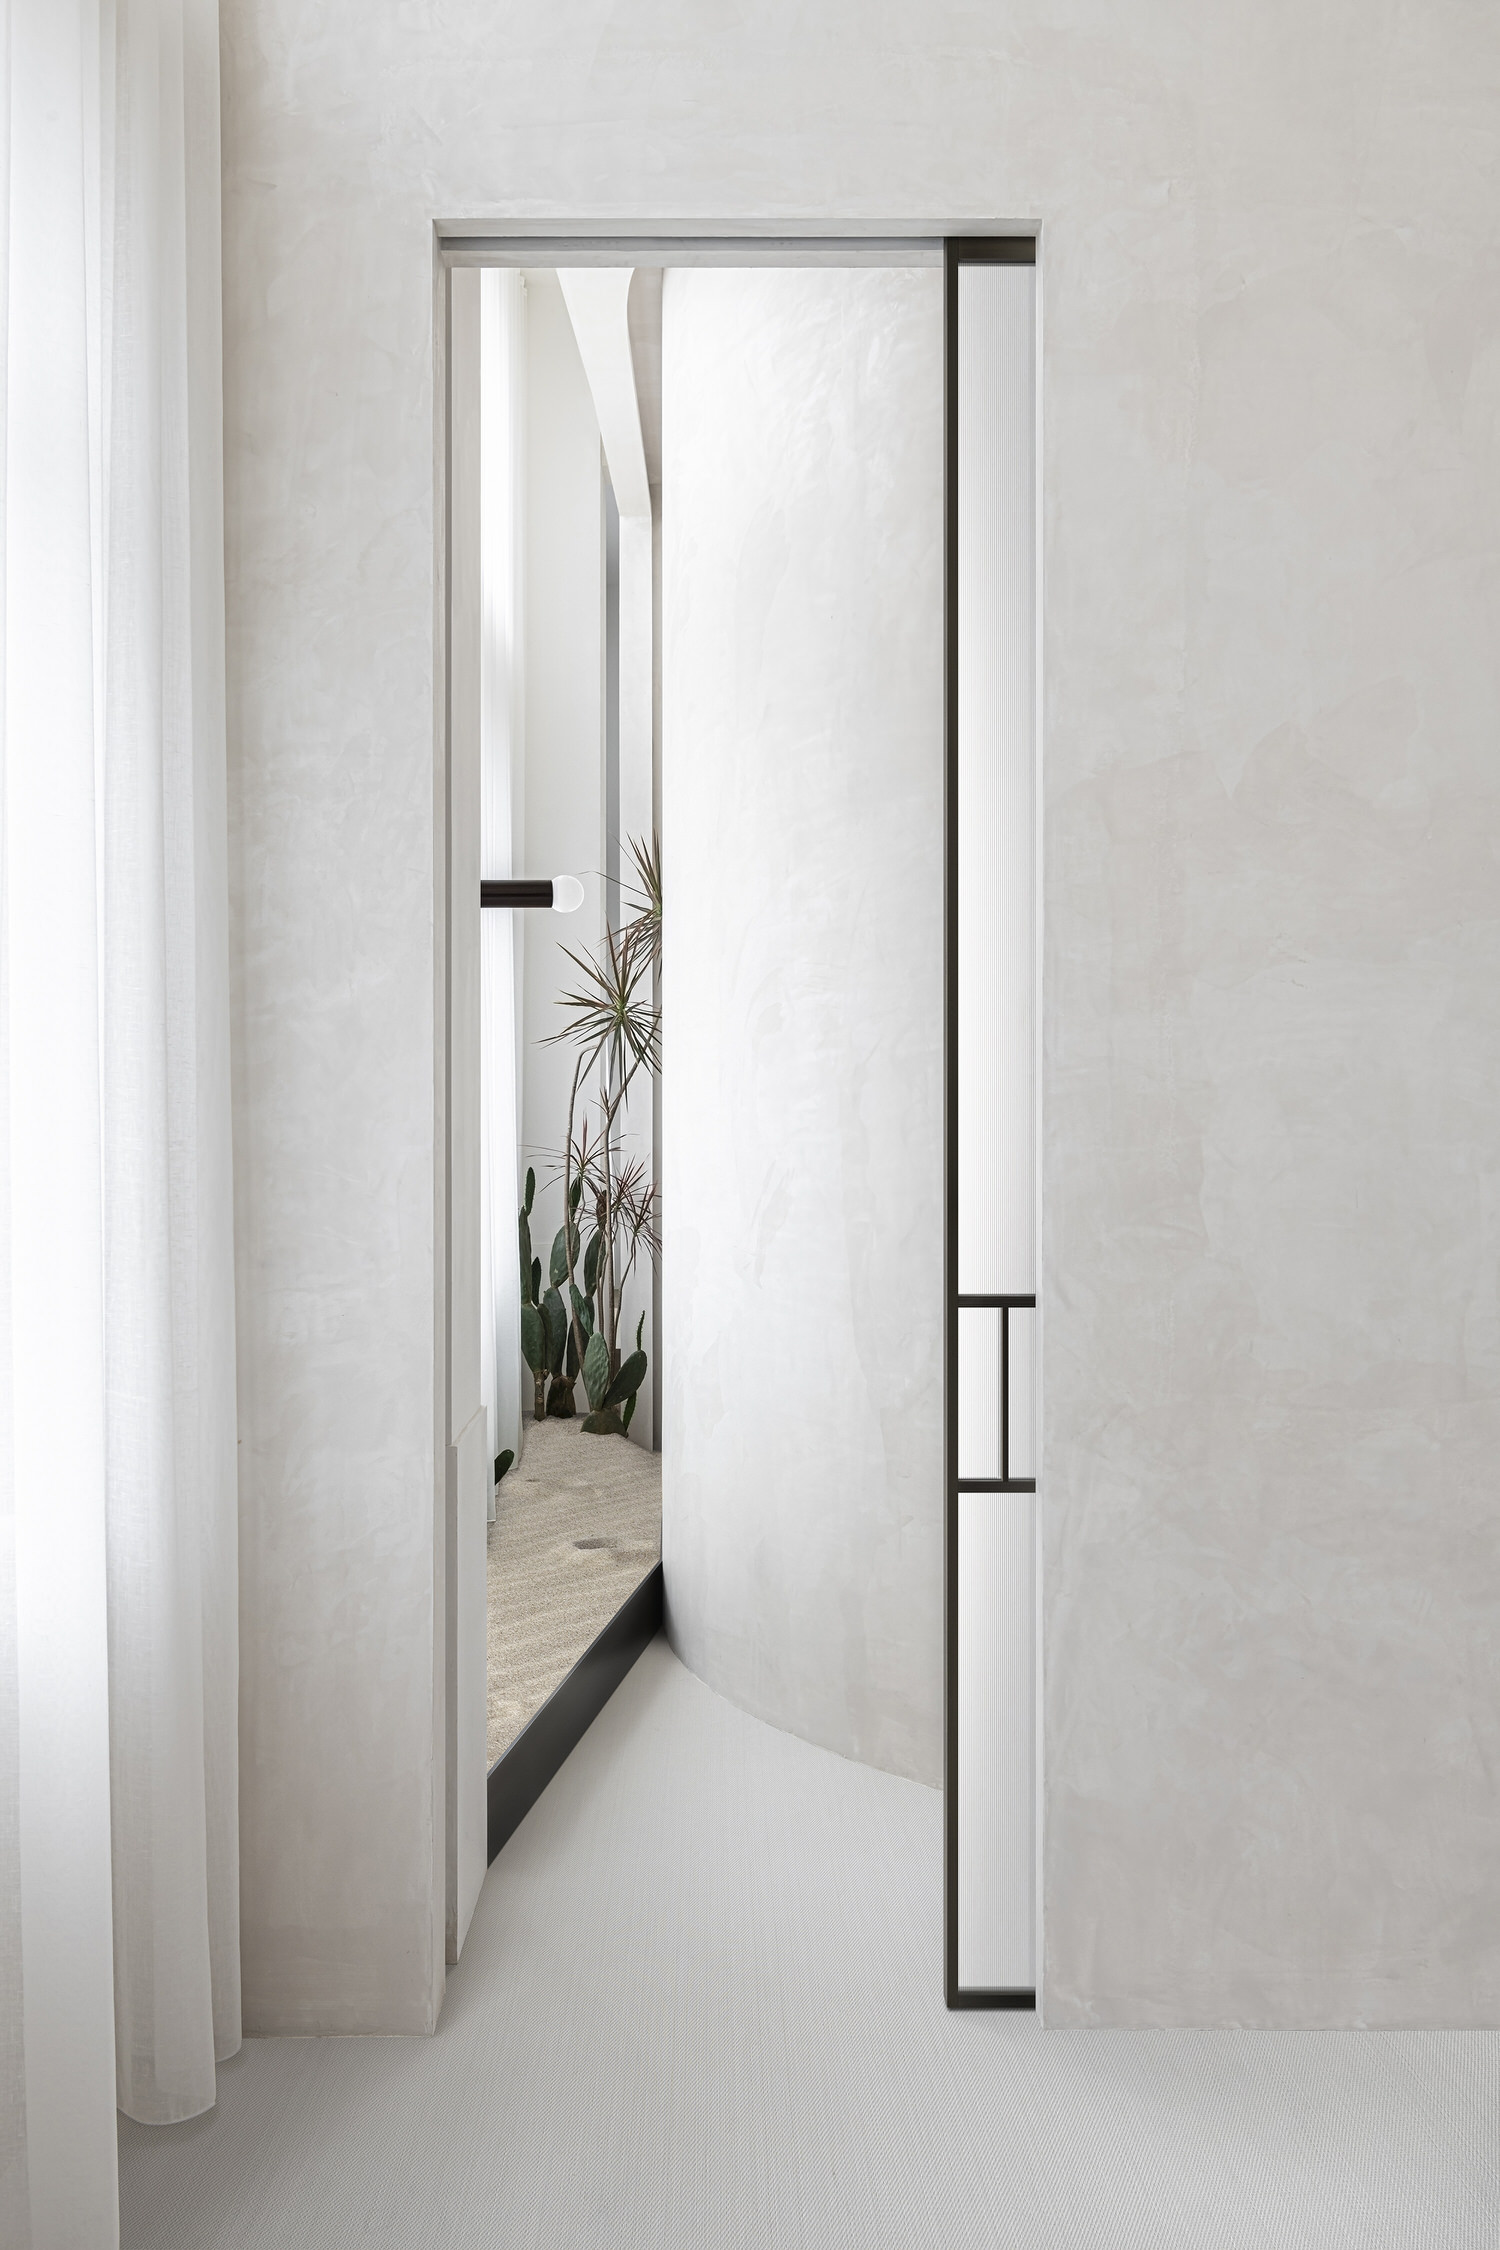 EVD Shanghai Design Office, Classical Aesthetic Symmetry, Photo Super Yingxiang | Yellowtrace